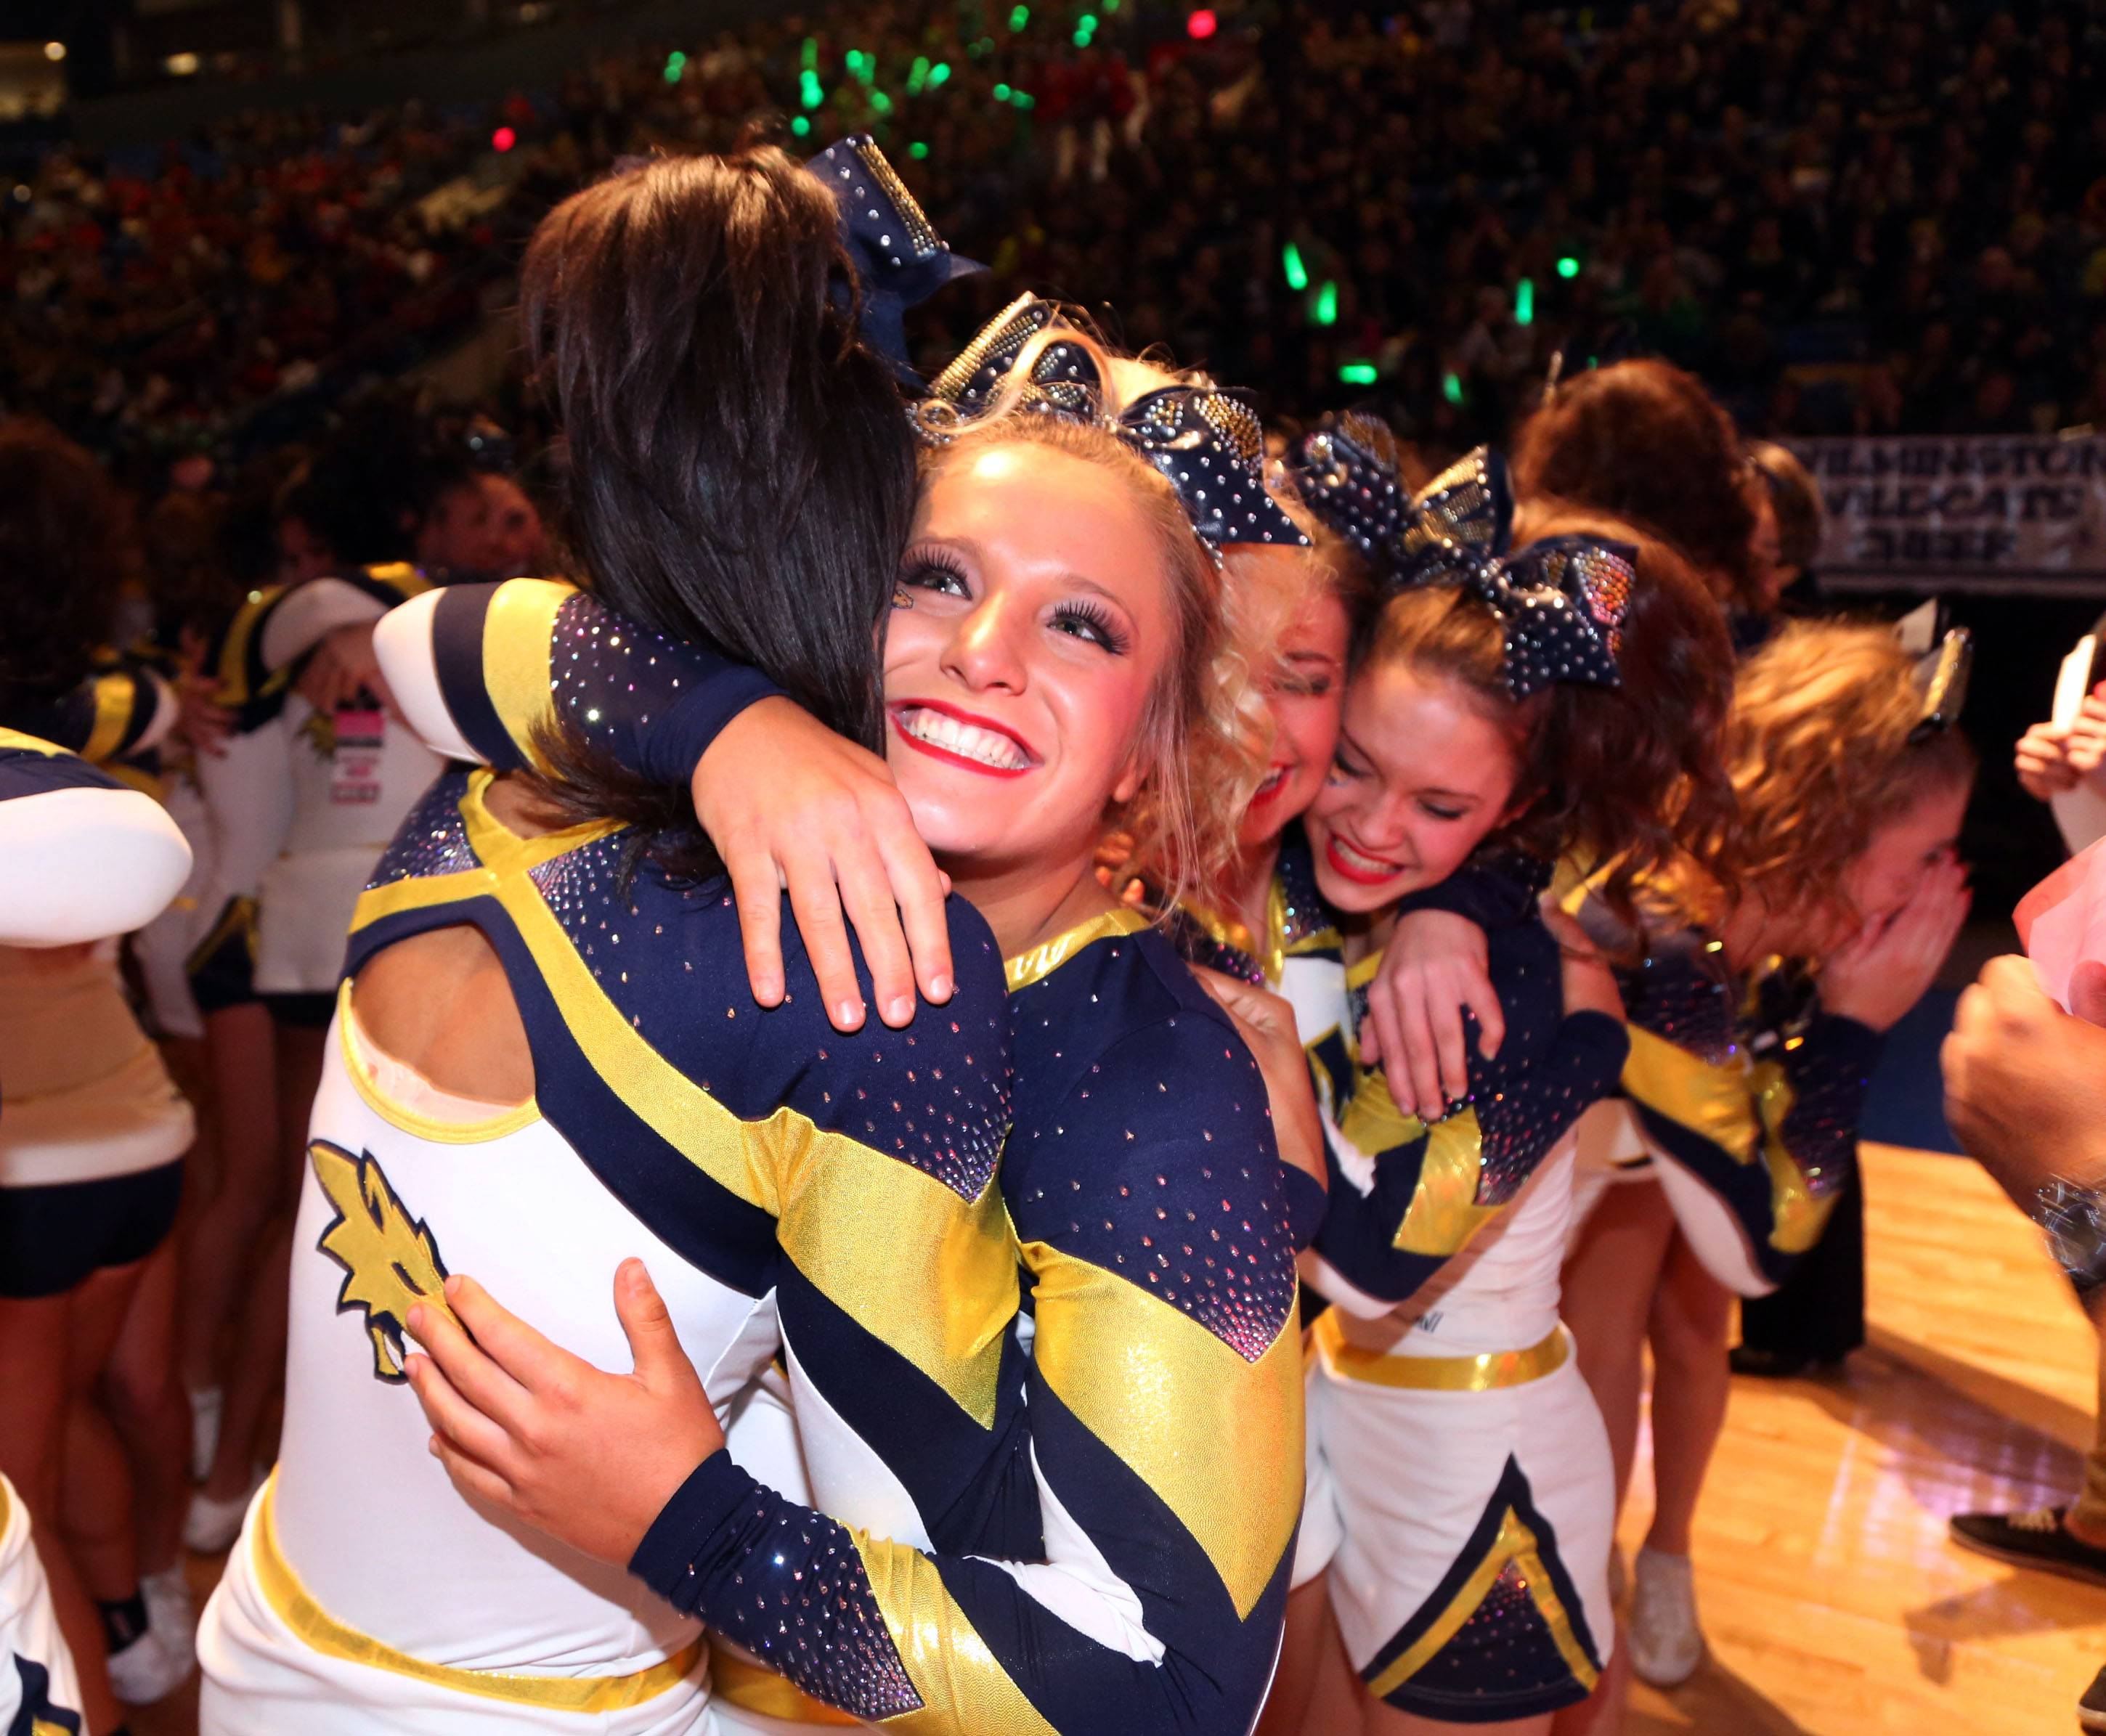 Neuqua Valley's Peaches Caldwell and Mandi Banyai celebrate after winning third place in the large school division at state cheerleading finals Saturday in Bloomington.